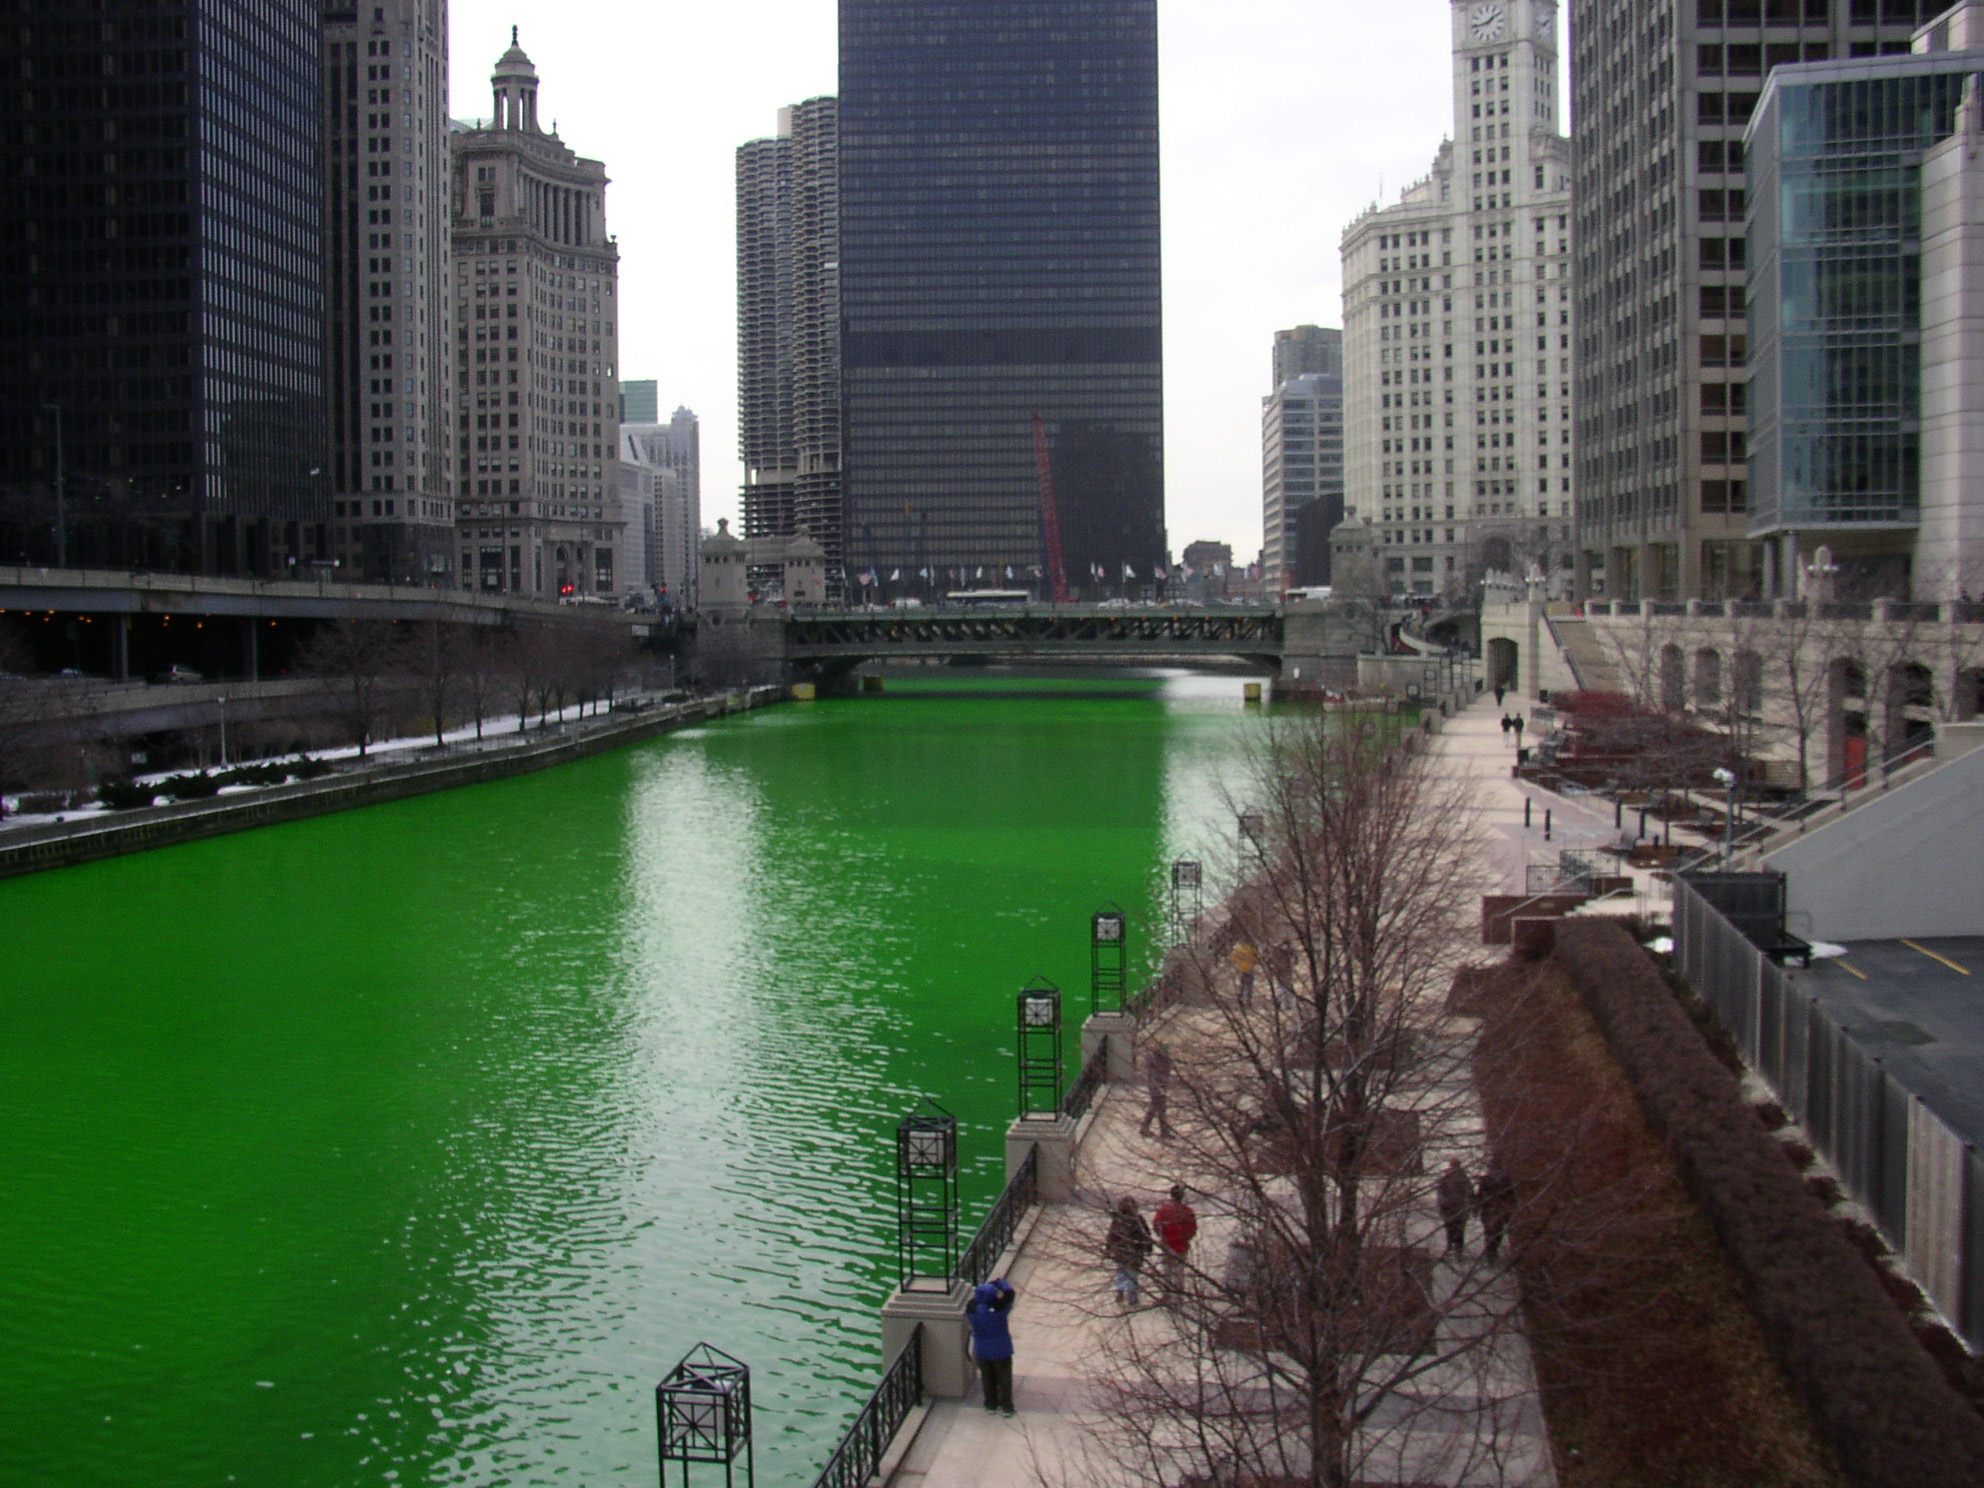 File:Chicago River dyed green, buildings more prominent.jpg ...